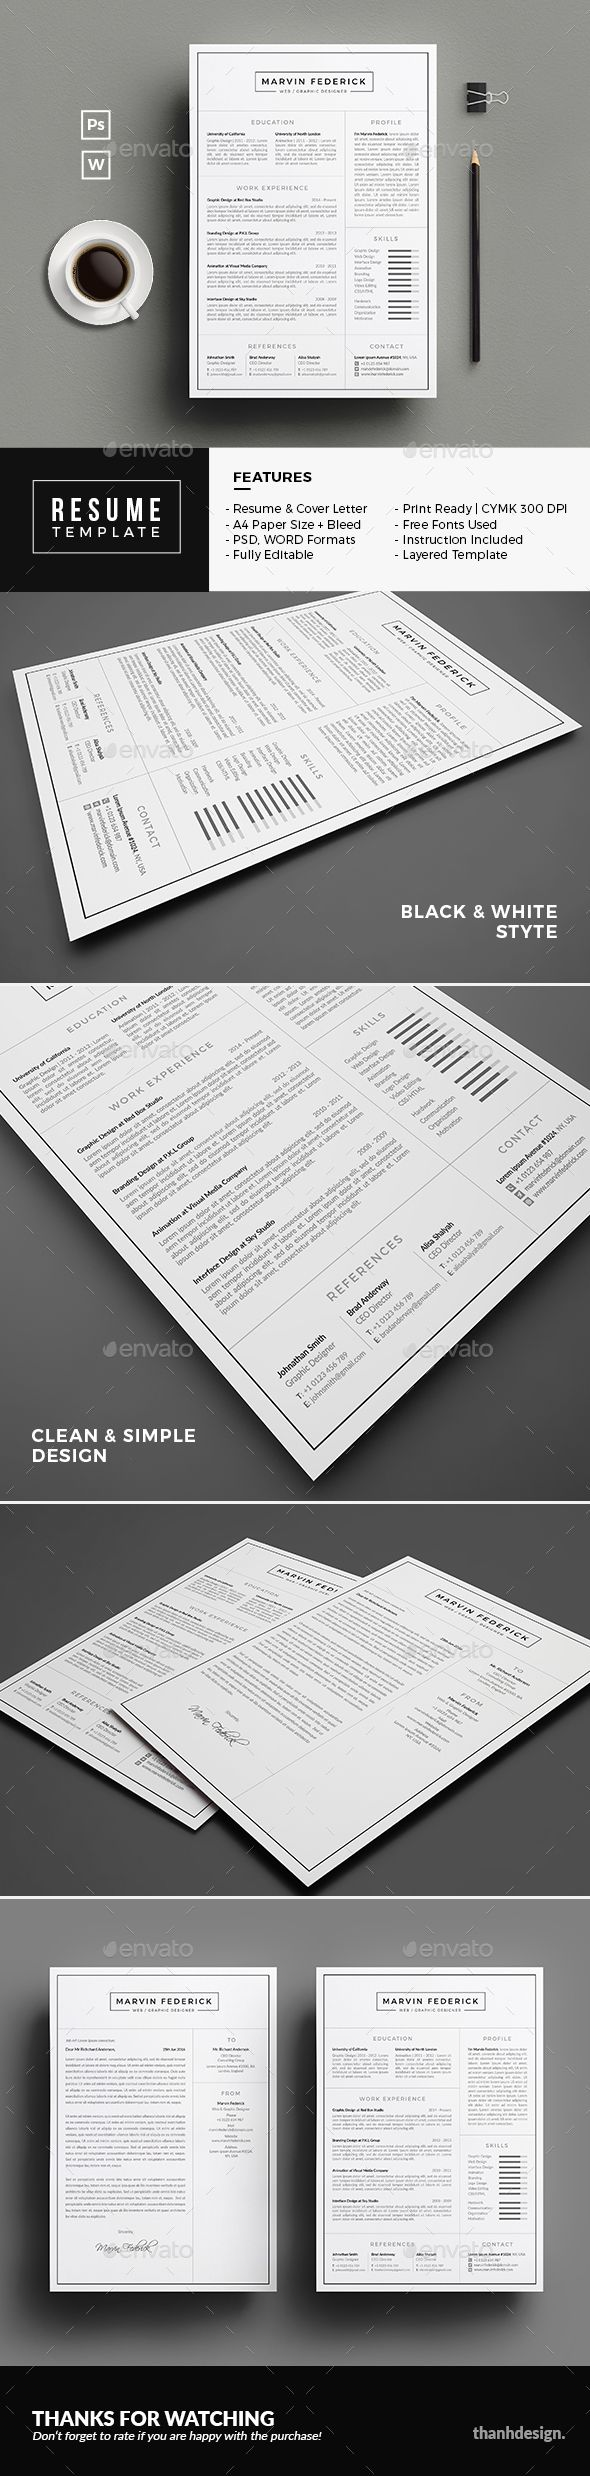 Resume 108 best bewerbung images on Pinterest